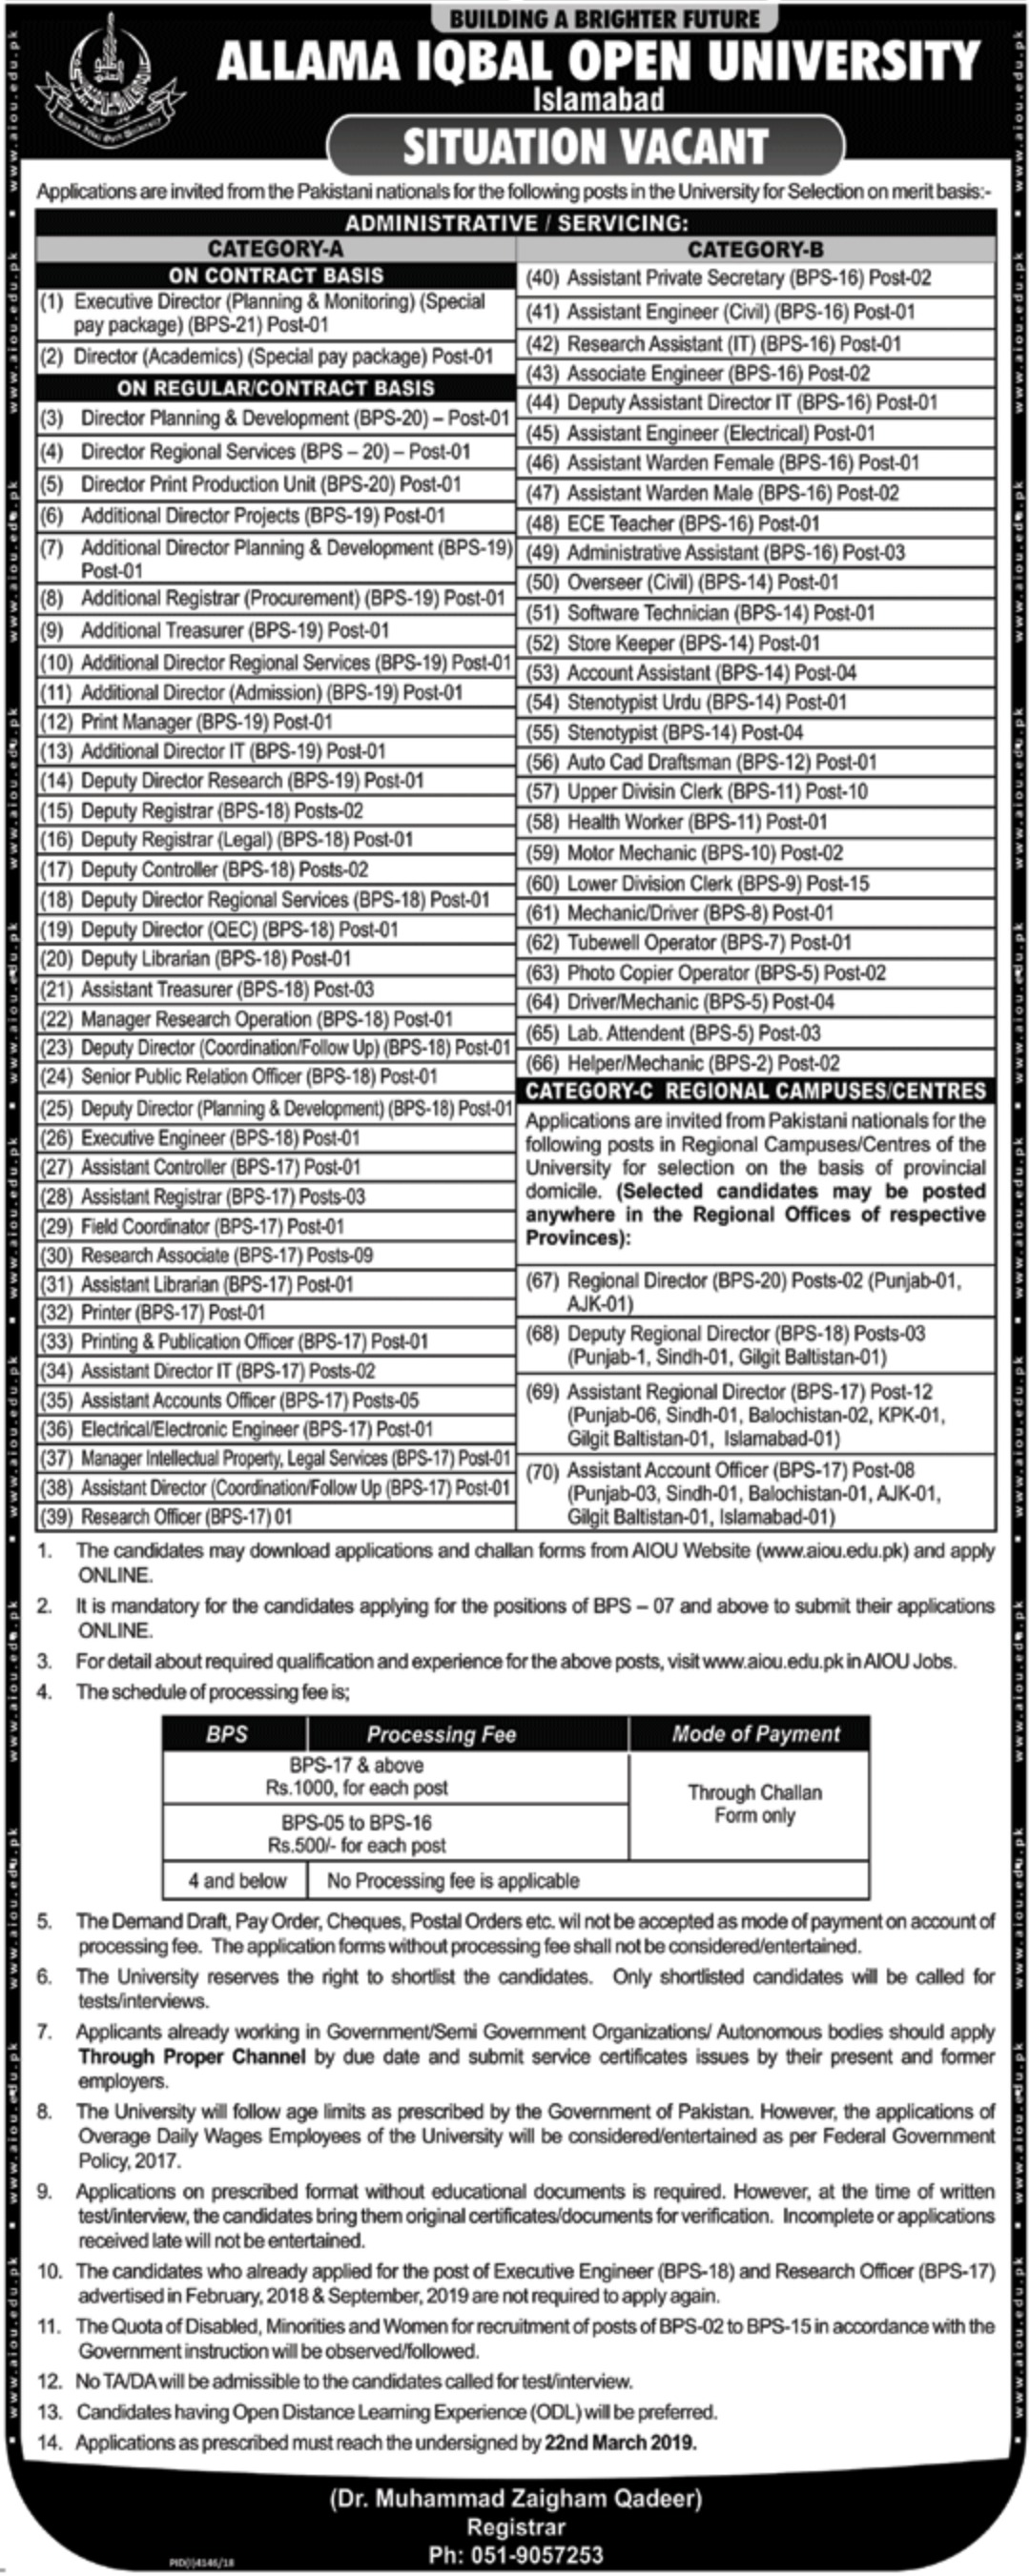 AIOU Jobs 2019 Allama Iqbal Open University Latest